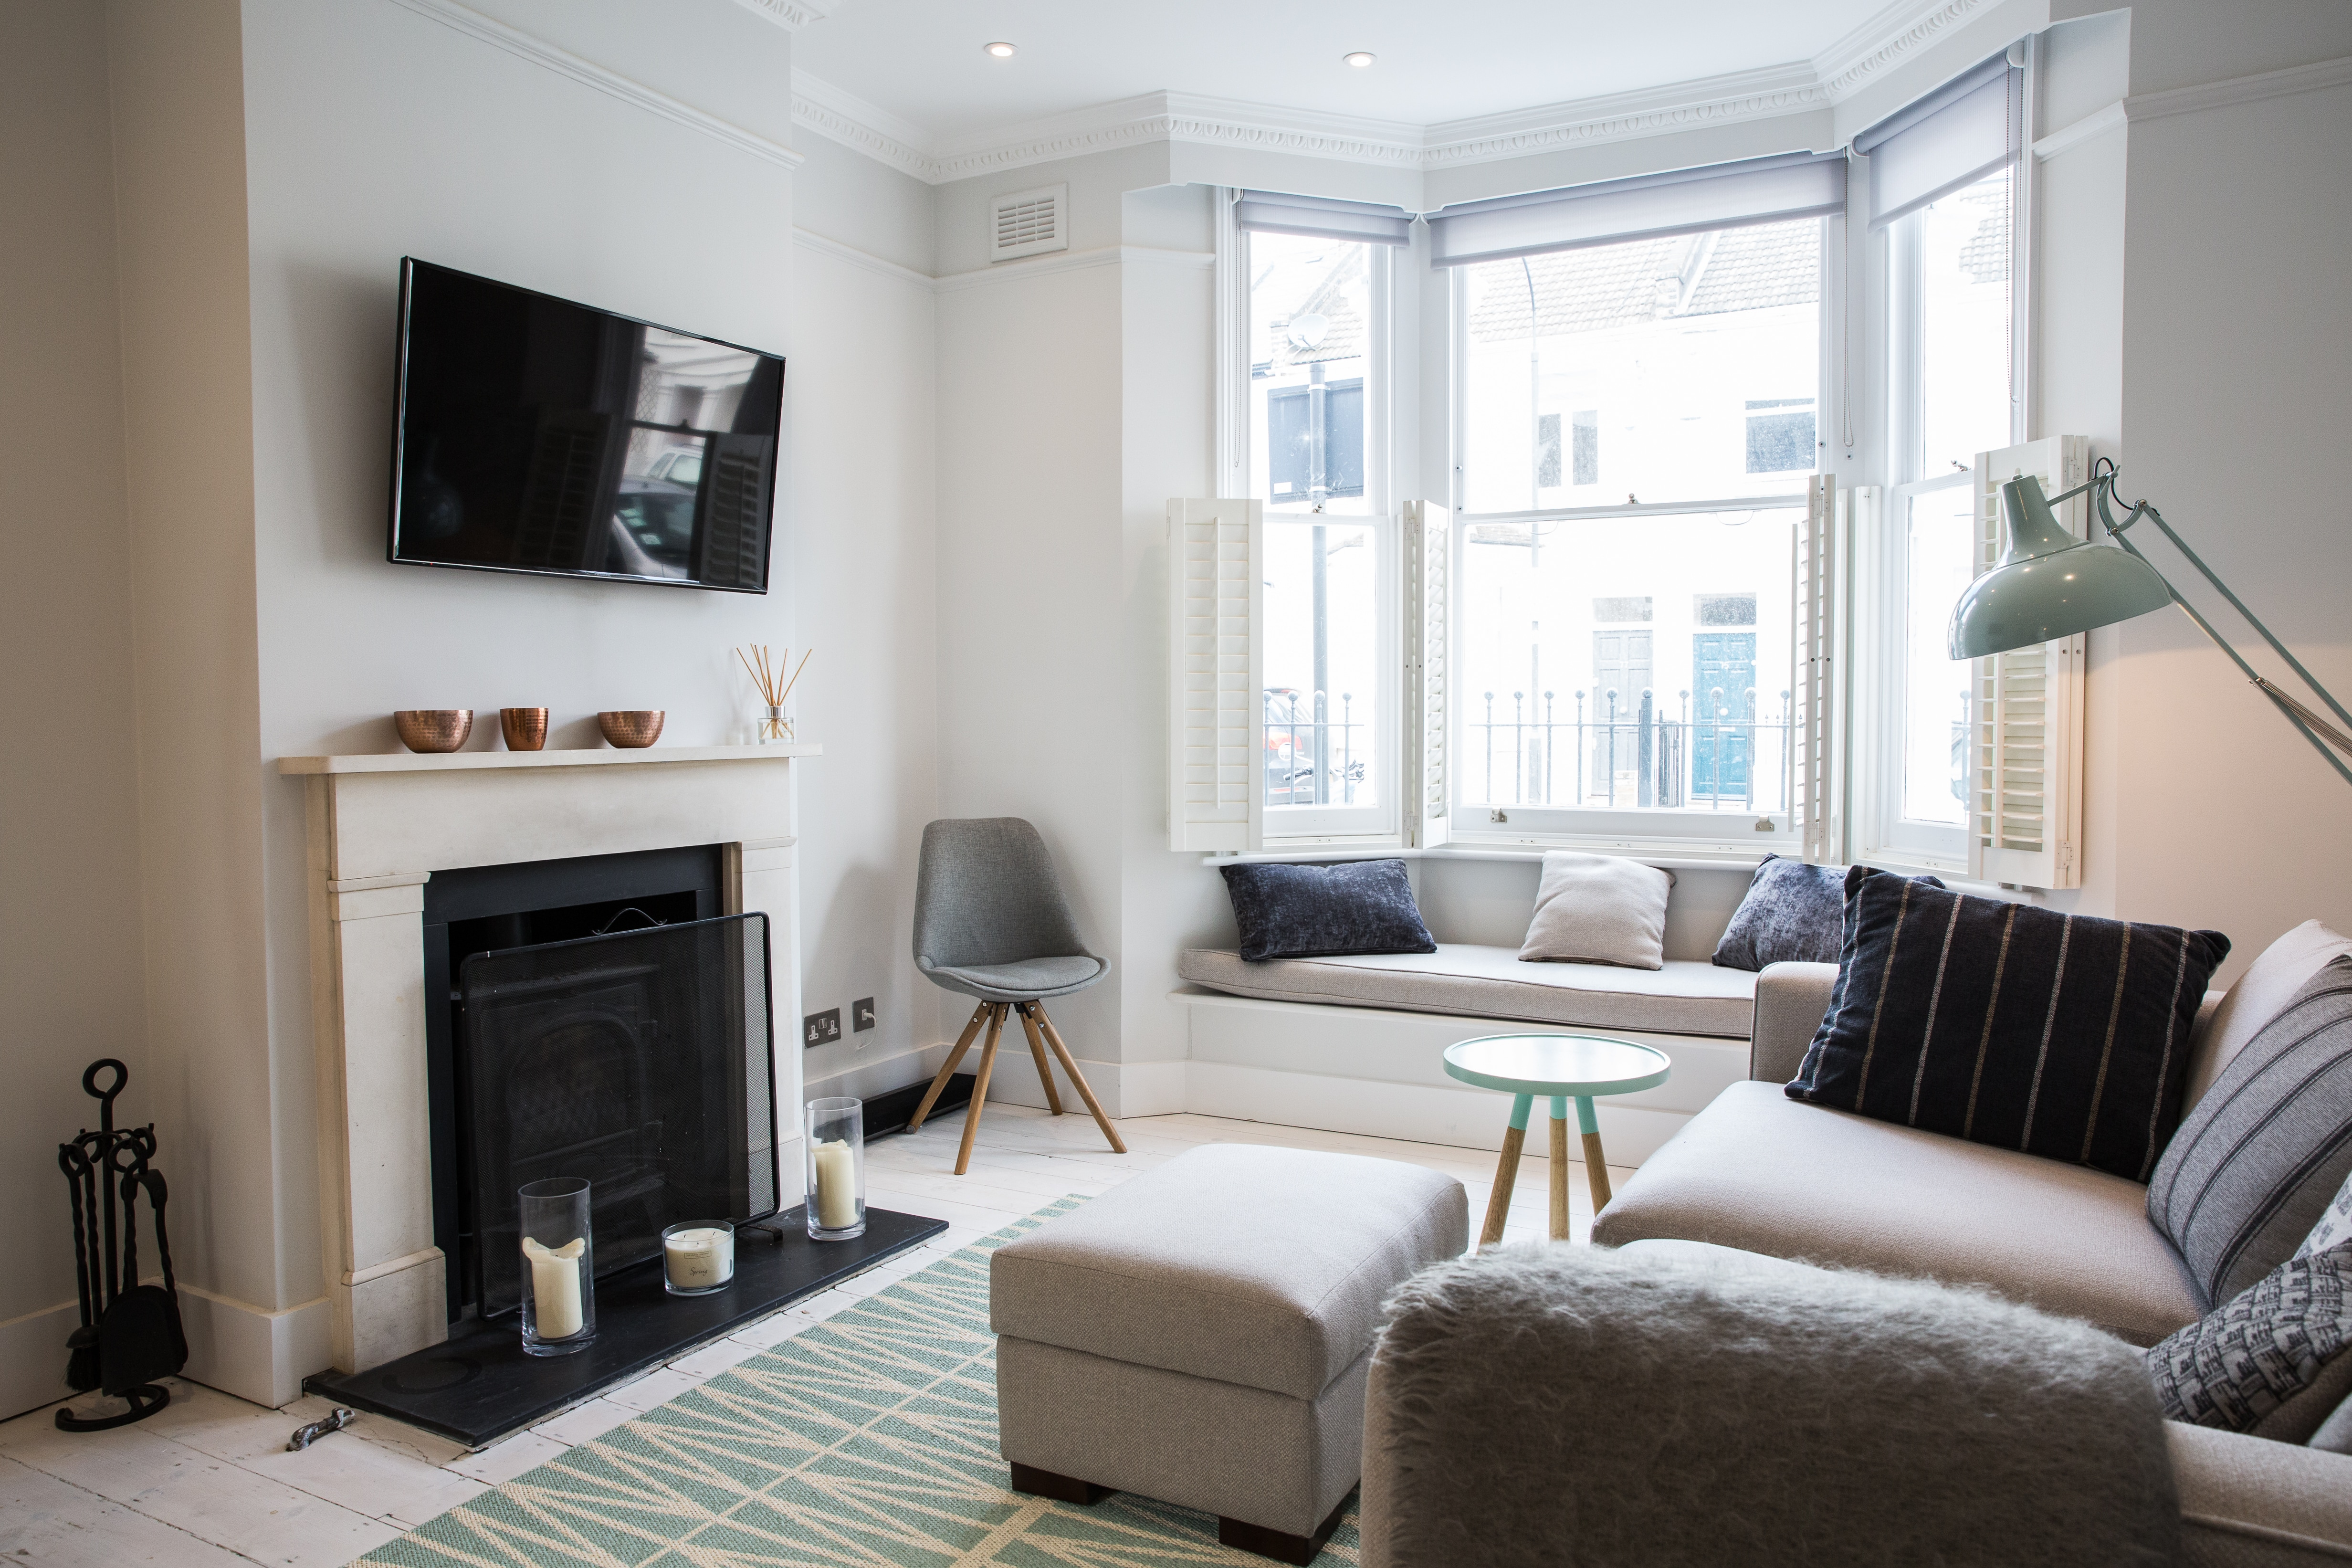 Property Image 2 - Picturesque Fulham house, 3 beds, sleeps 6